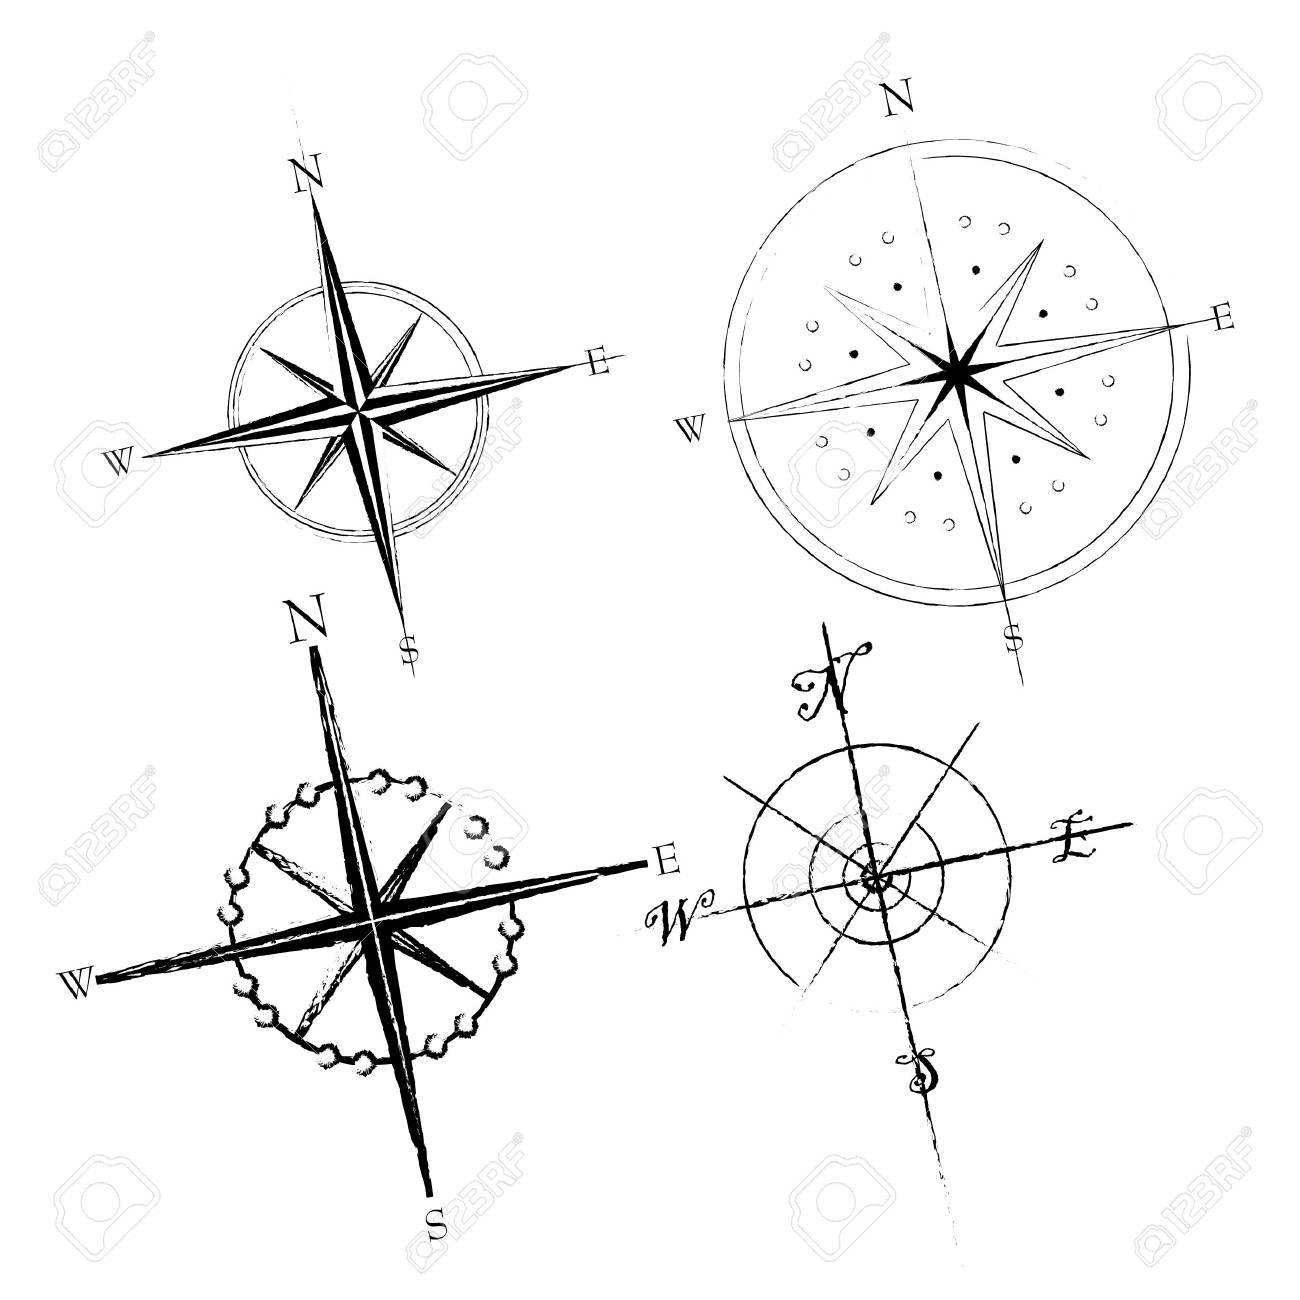 Set of compass roses available in both jpeg and eps8 formats. - 5548916